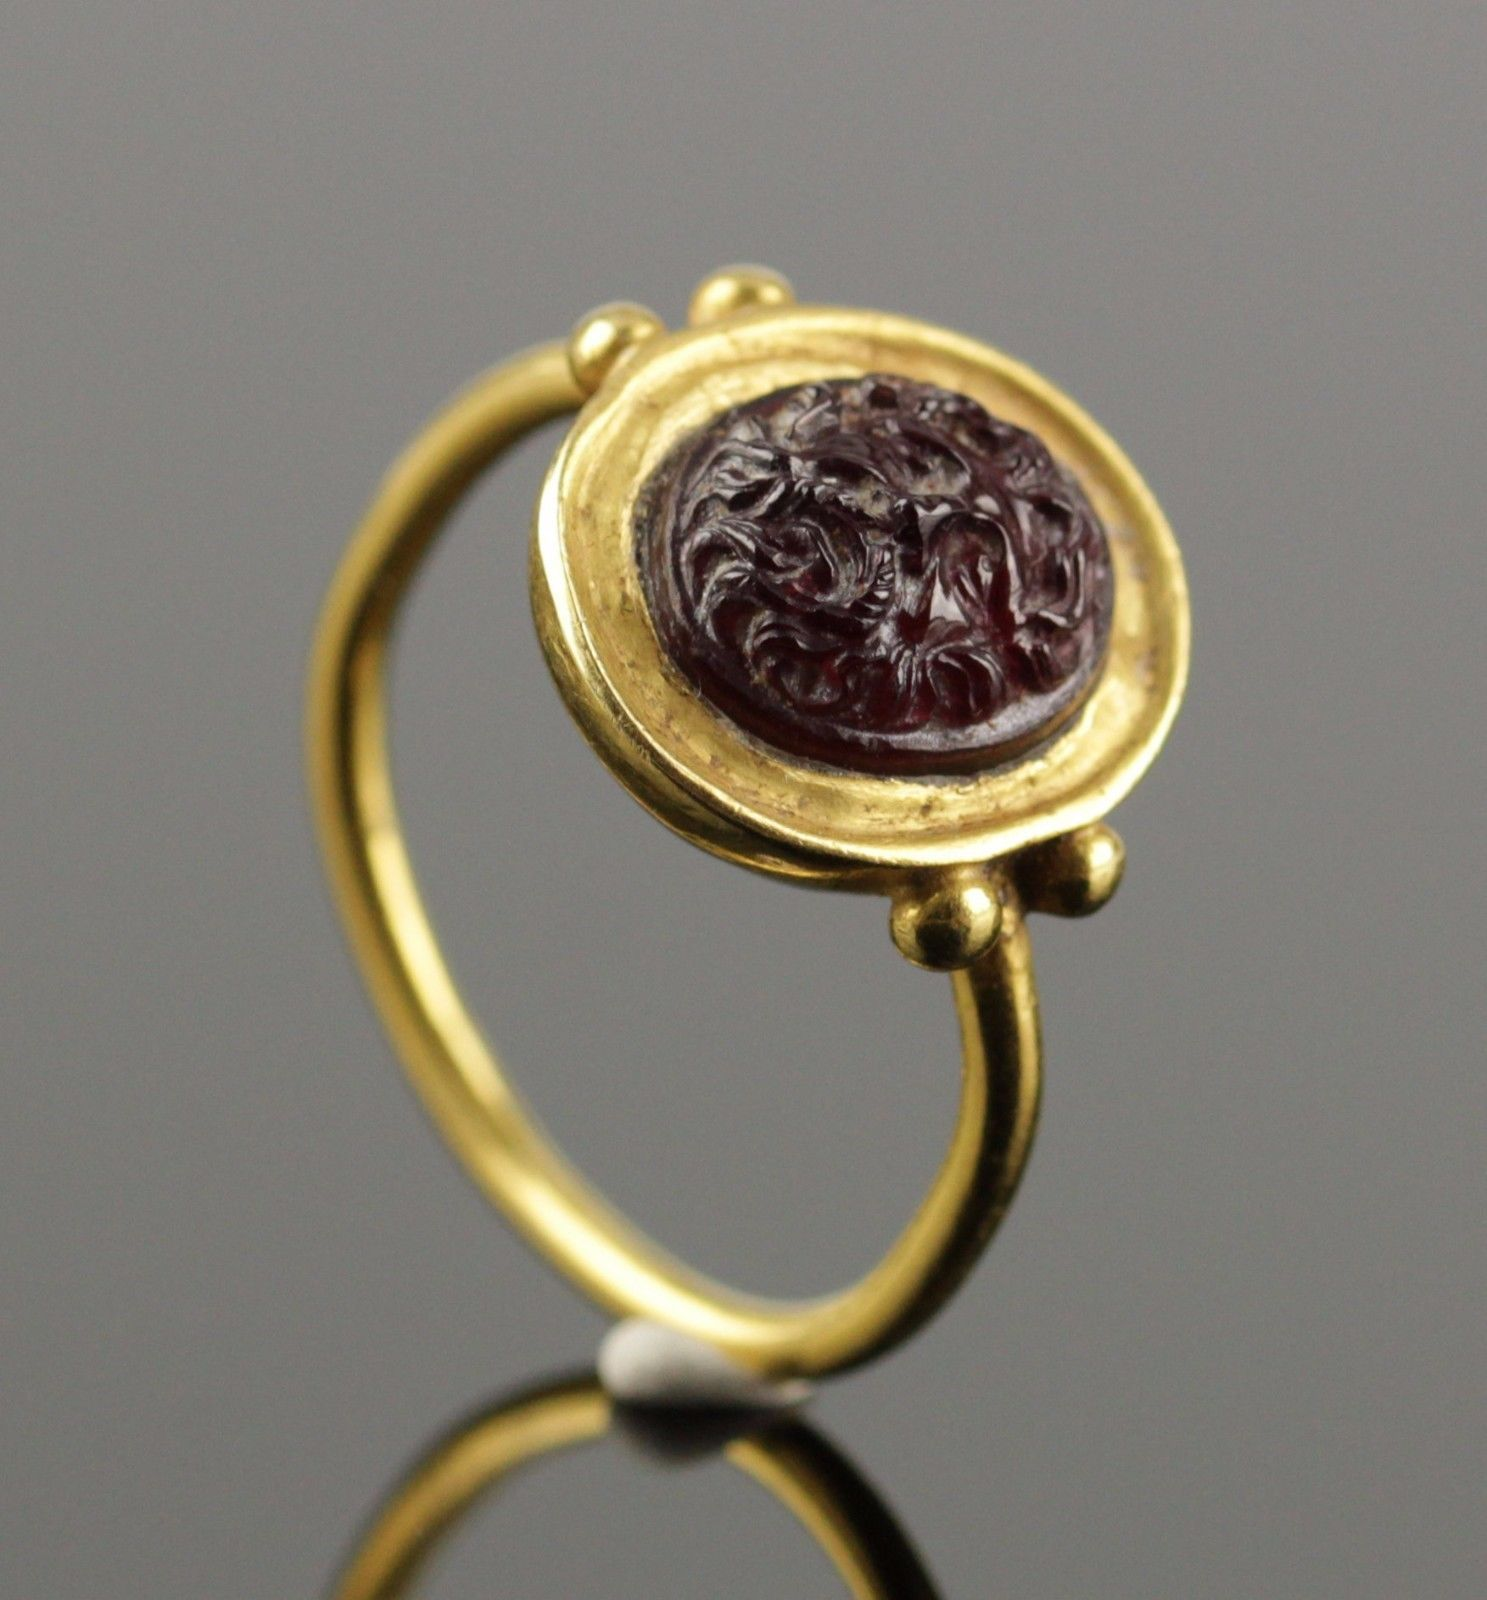 Ancient Roman Rings details about gold roman ring, intaglio of a rooster